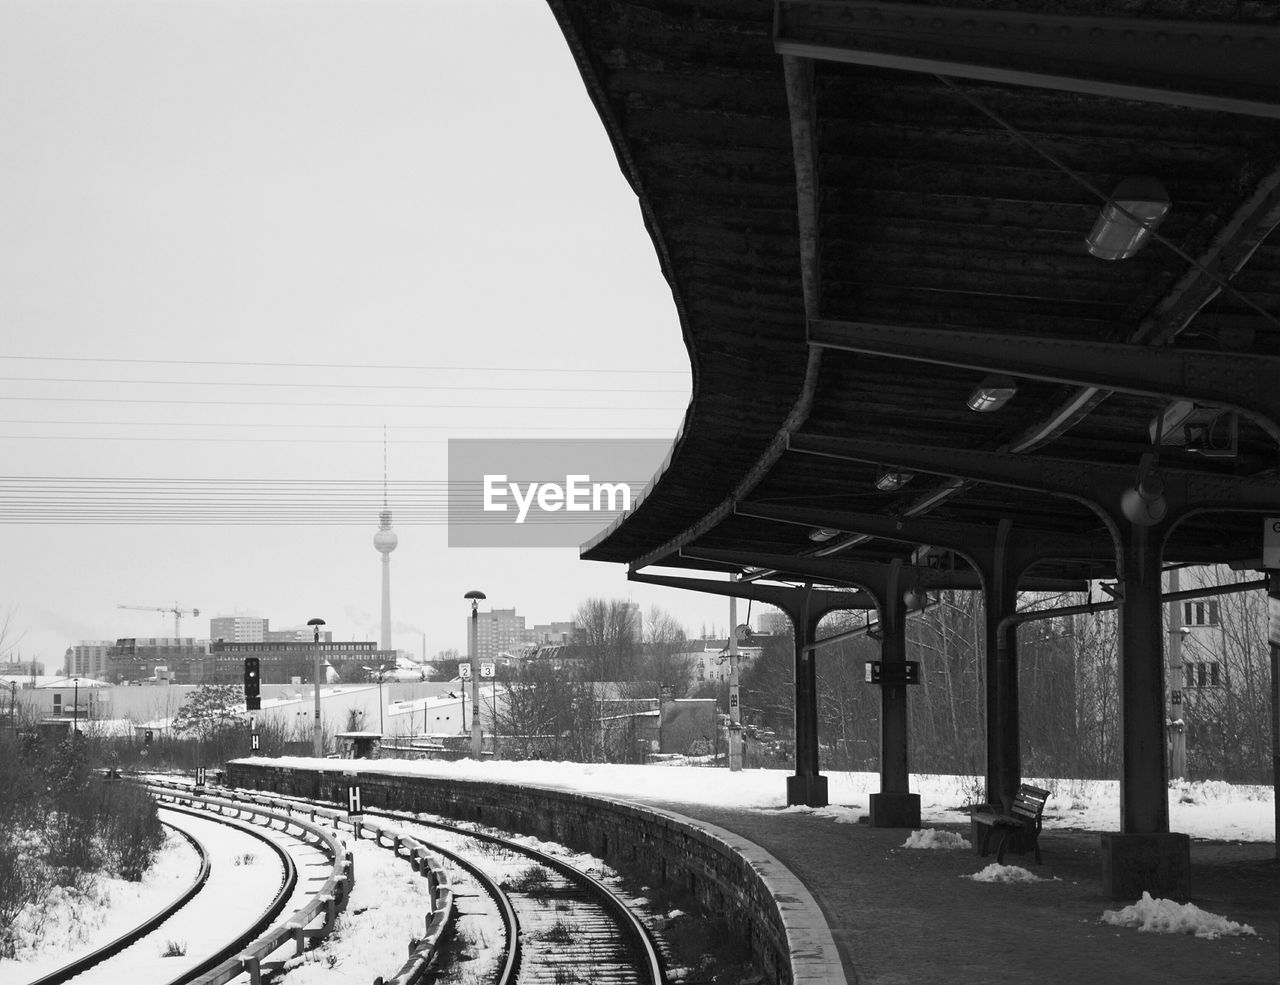 Empty railroad station with fernsehturm in background during winter